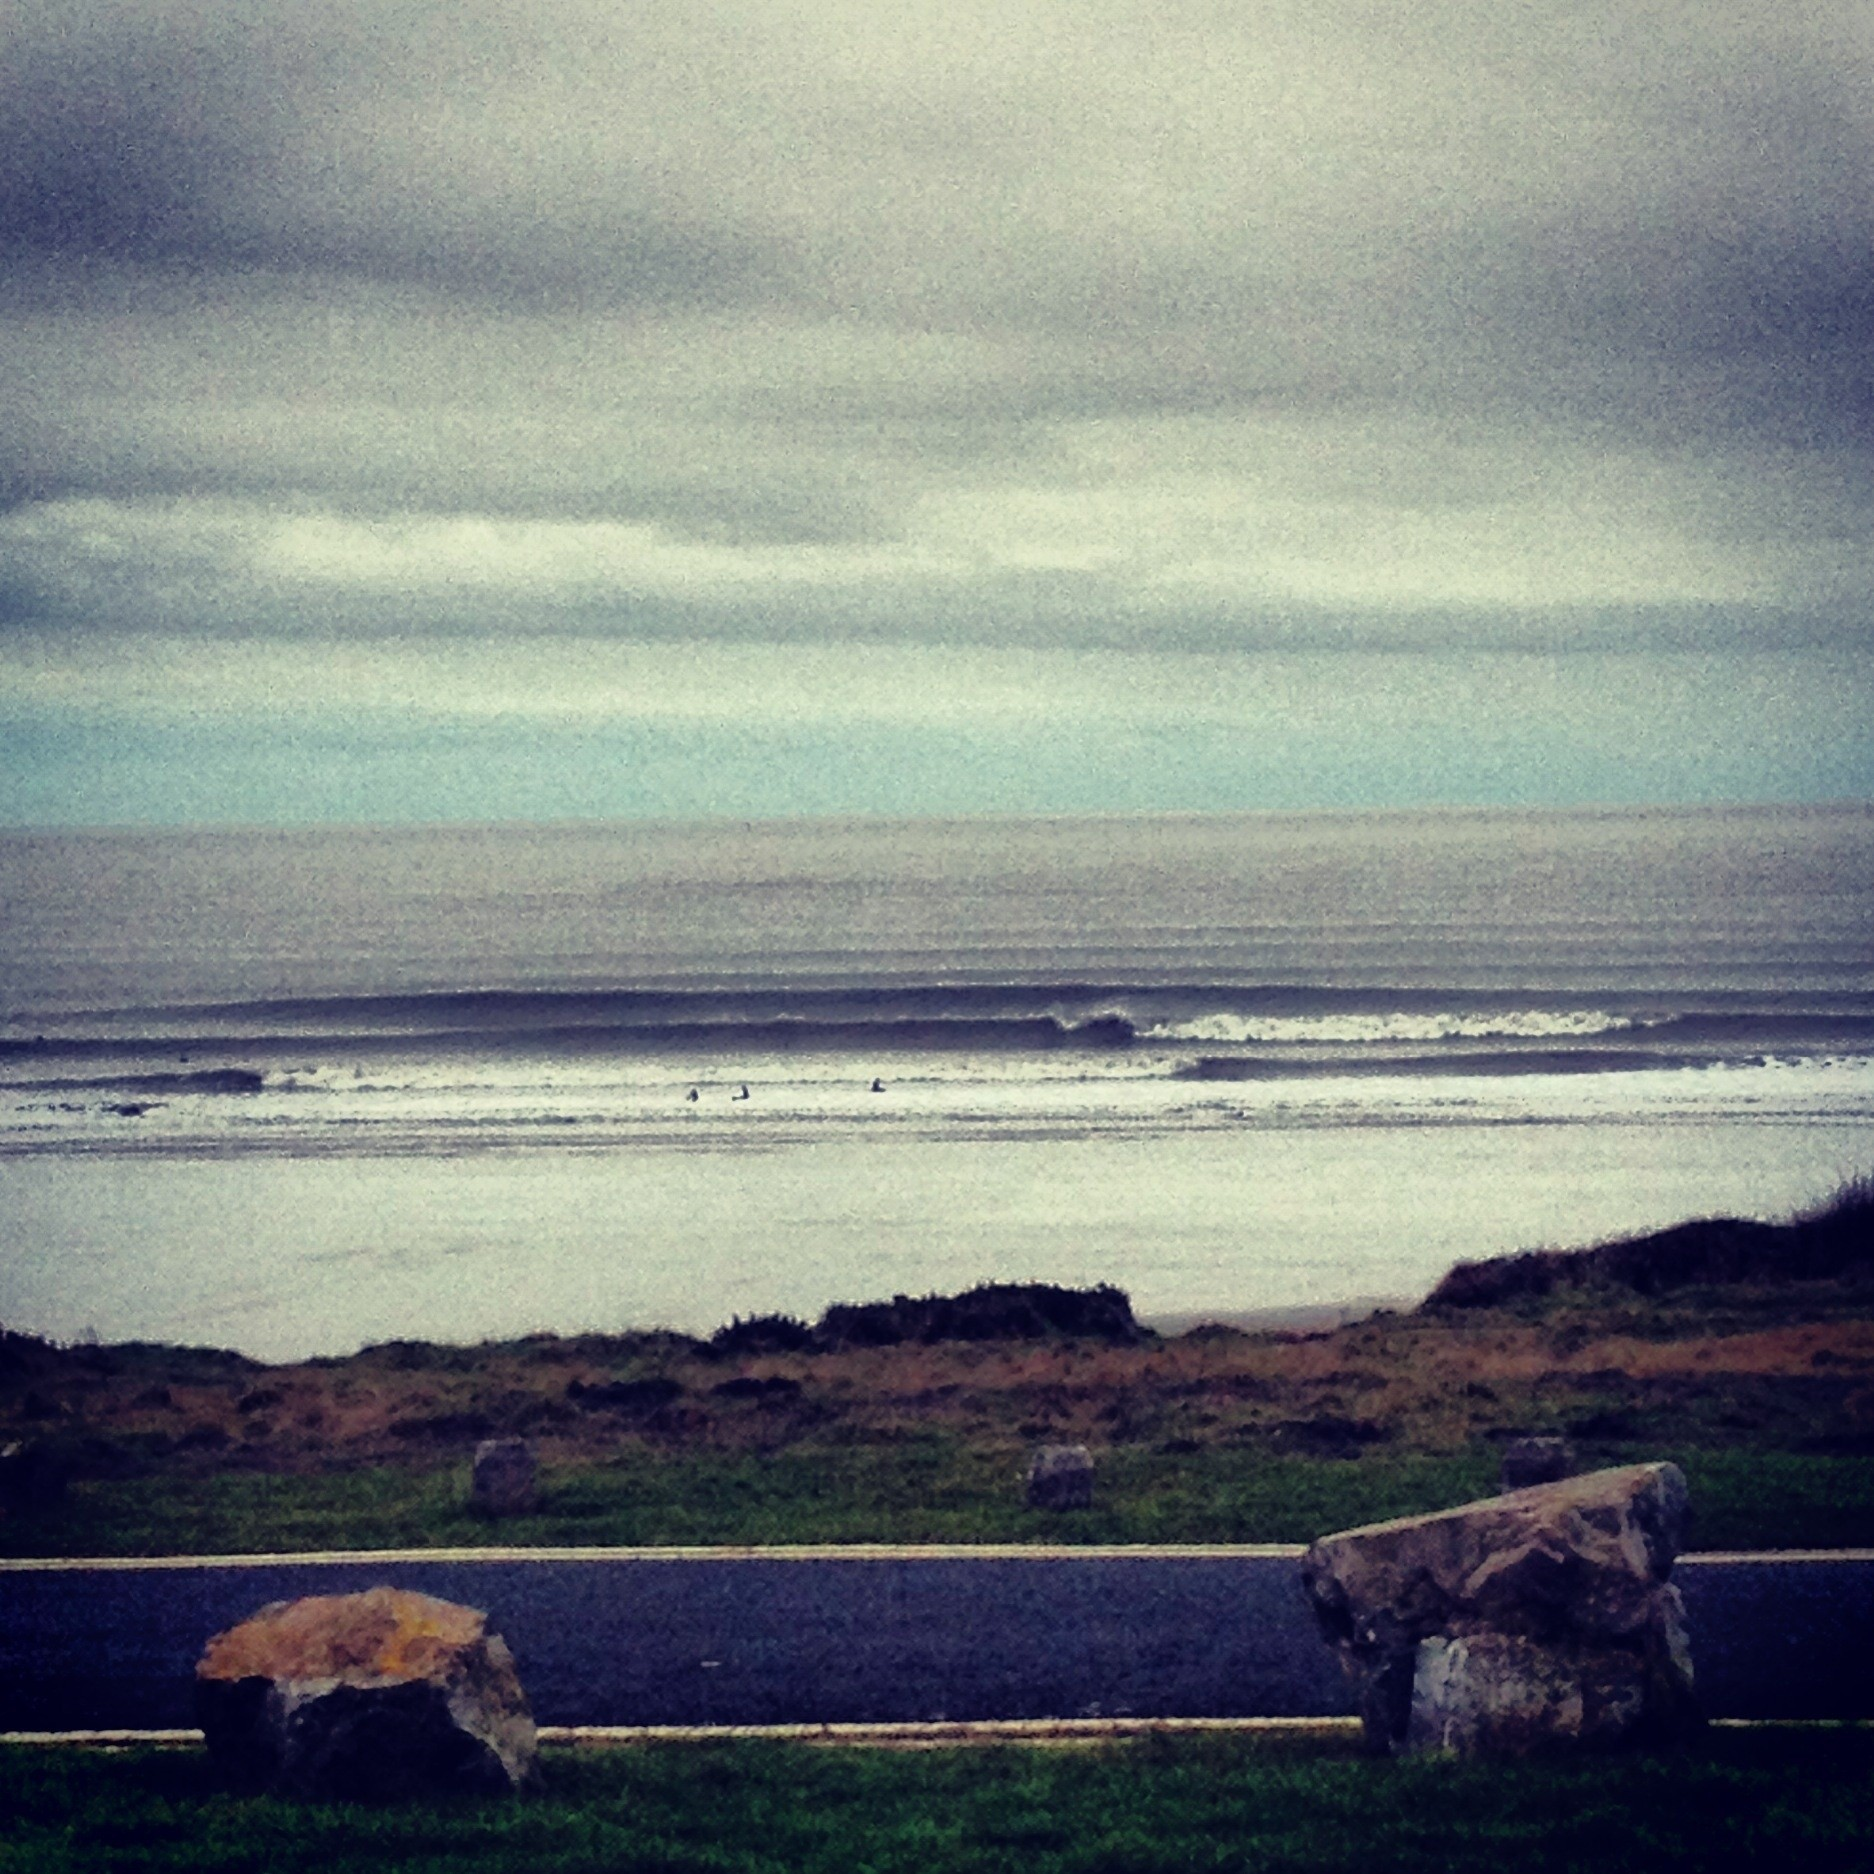 James Kinsella's photo of Porthcawl - Rest Bay